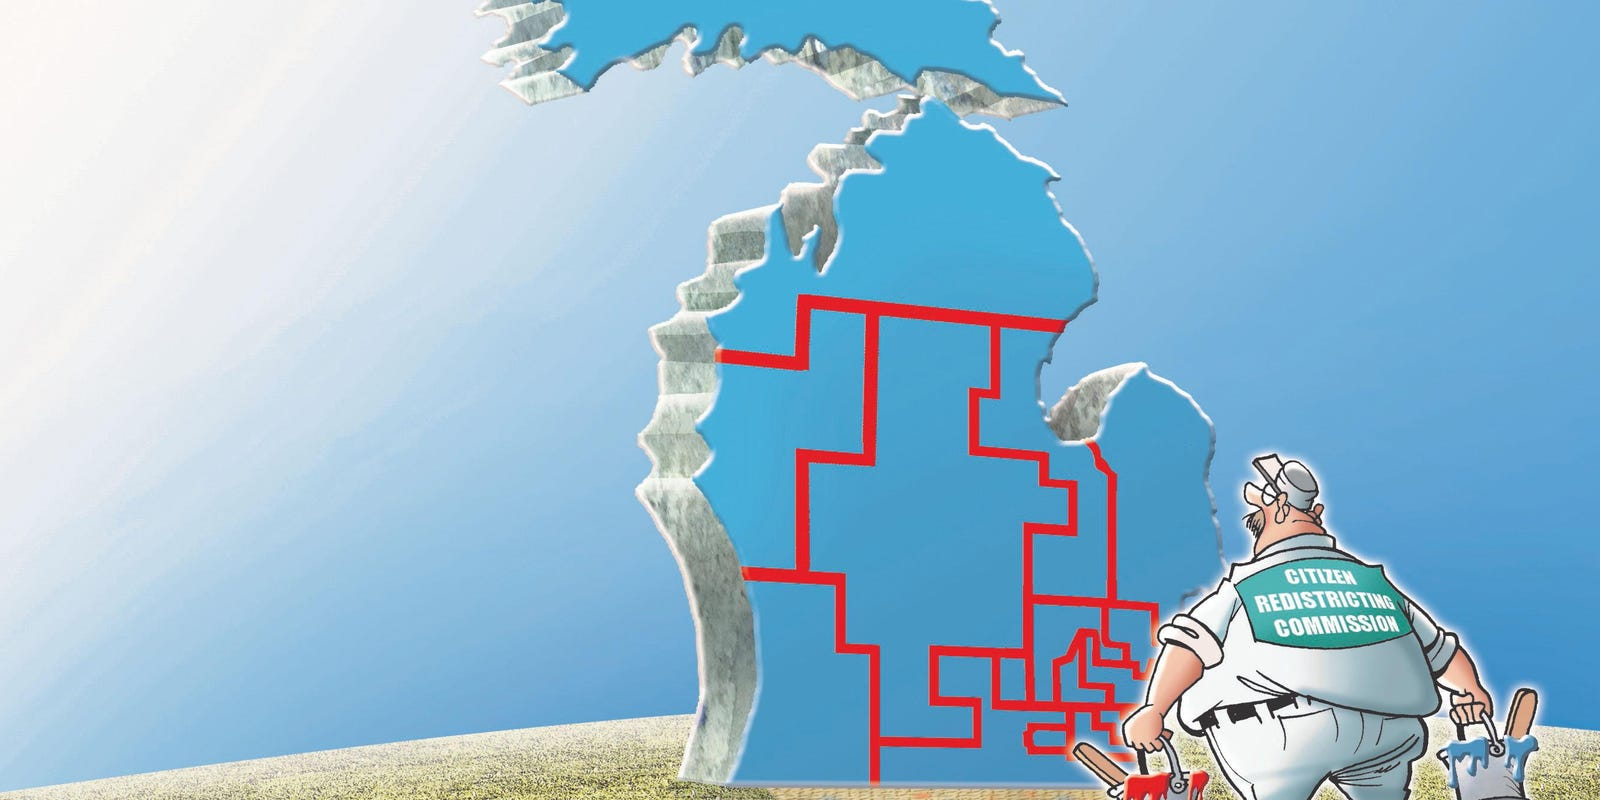 Redistricting Commission offers break with corrupt past